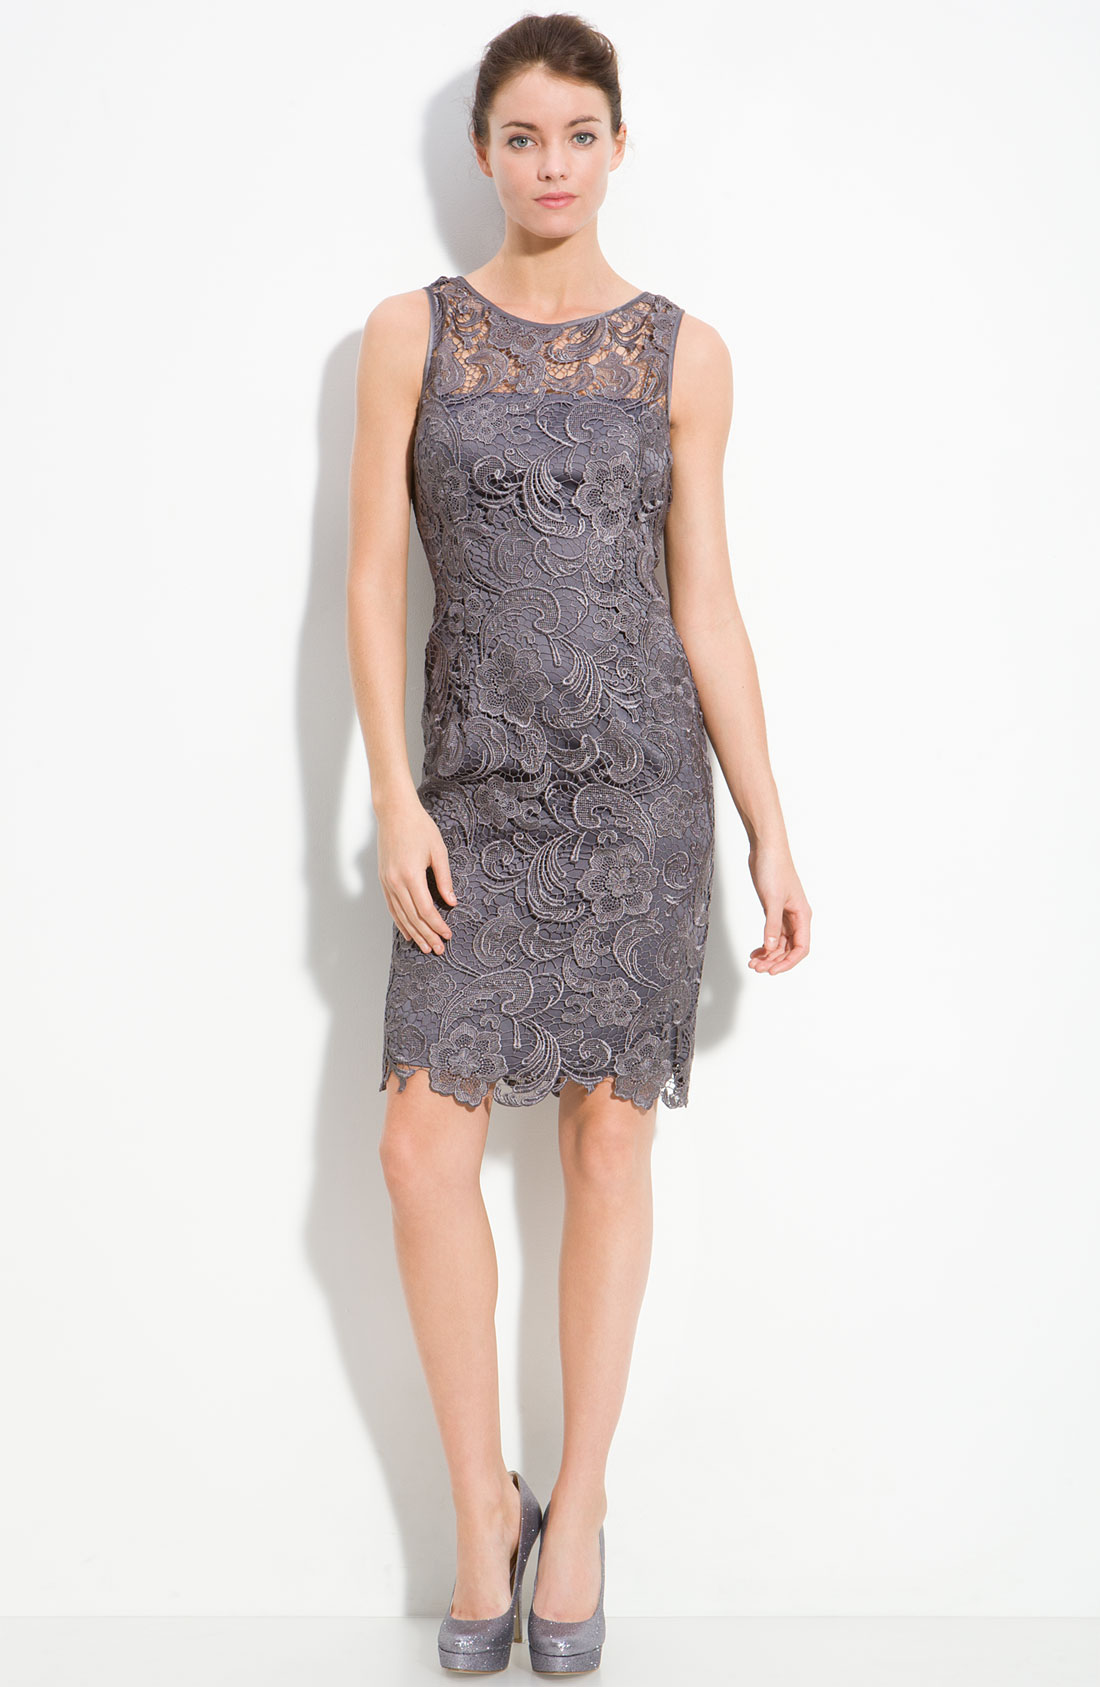 Nothing's as elegant or alluring as lace for an evening affair, and Adrianna Papell's chic sheath is case in point. The sheer overlay at the chest and scalloped hem are flirty-yet-refined distrib-ah3euse9.tk: $